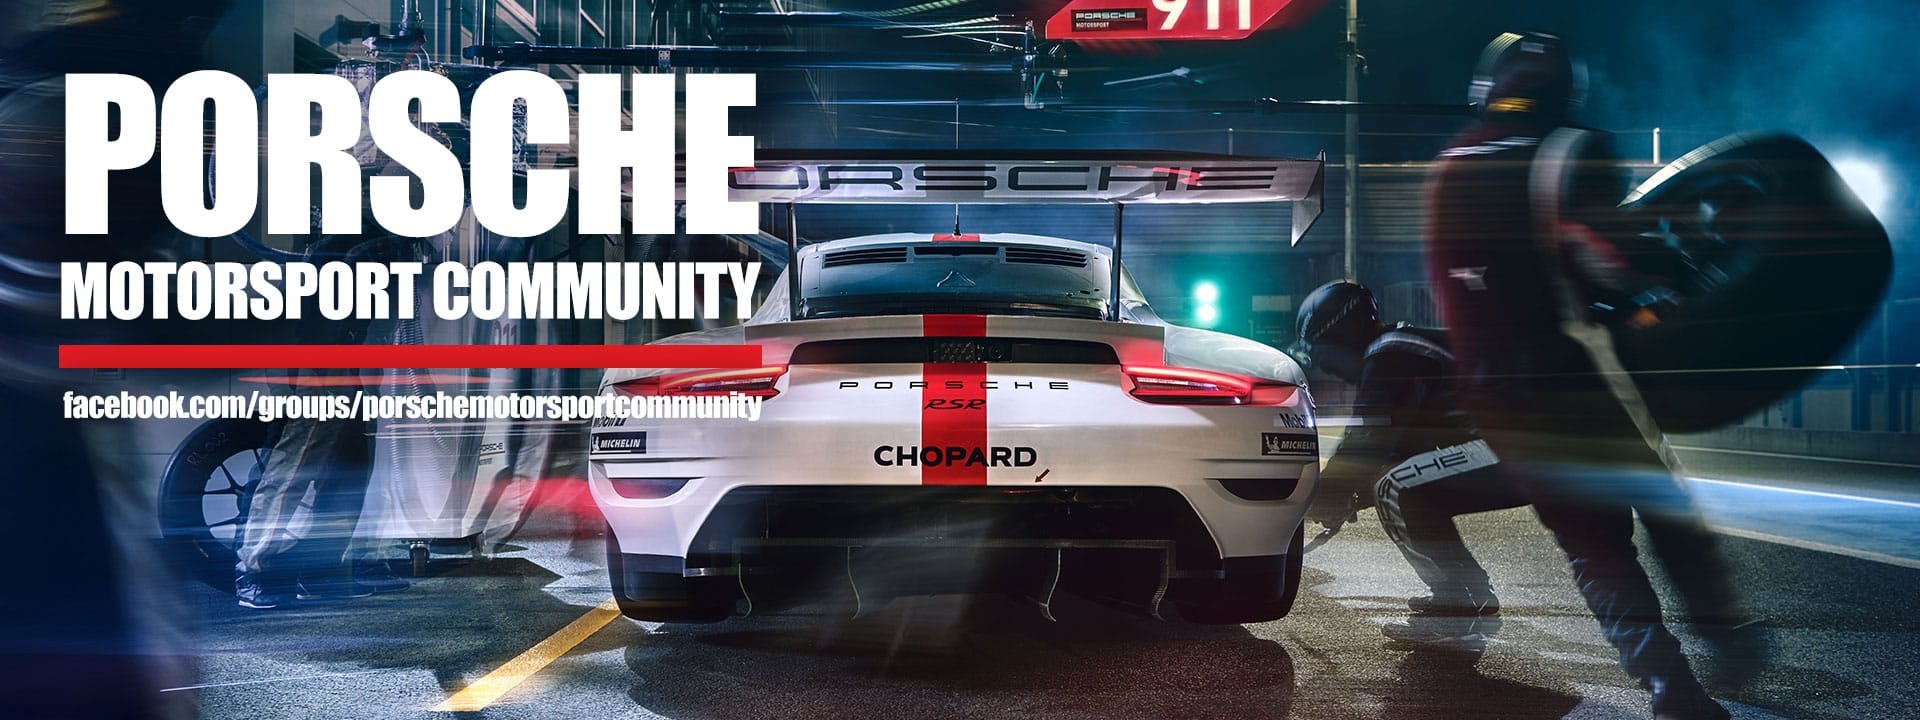 Search for Porsche Motorsport Community on Facebook